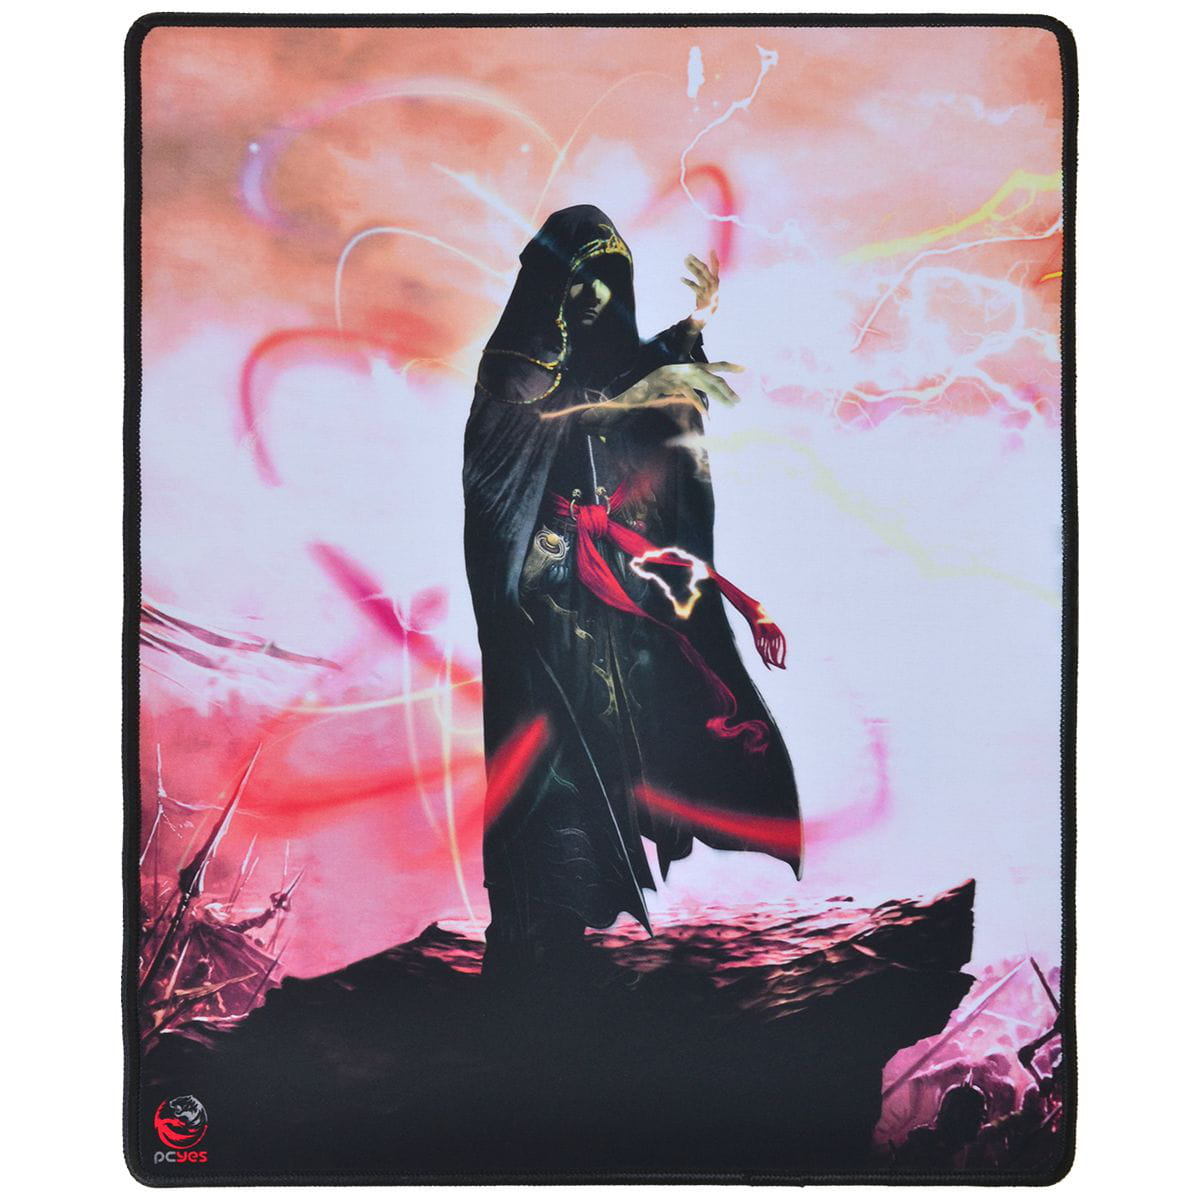 Mouse Pad Pcyes RPG Wizard - 400X500MM - RW40X50